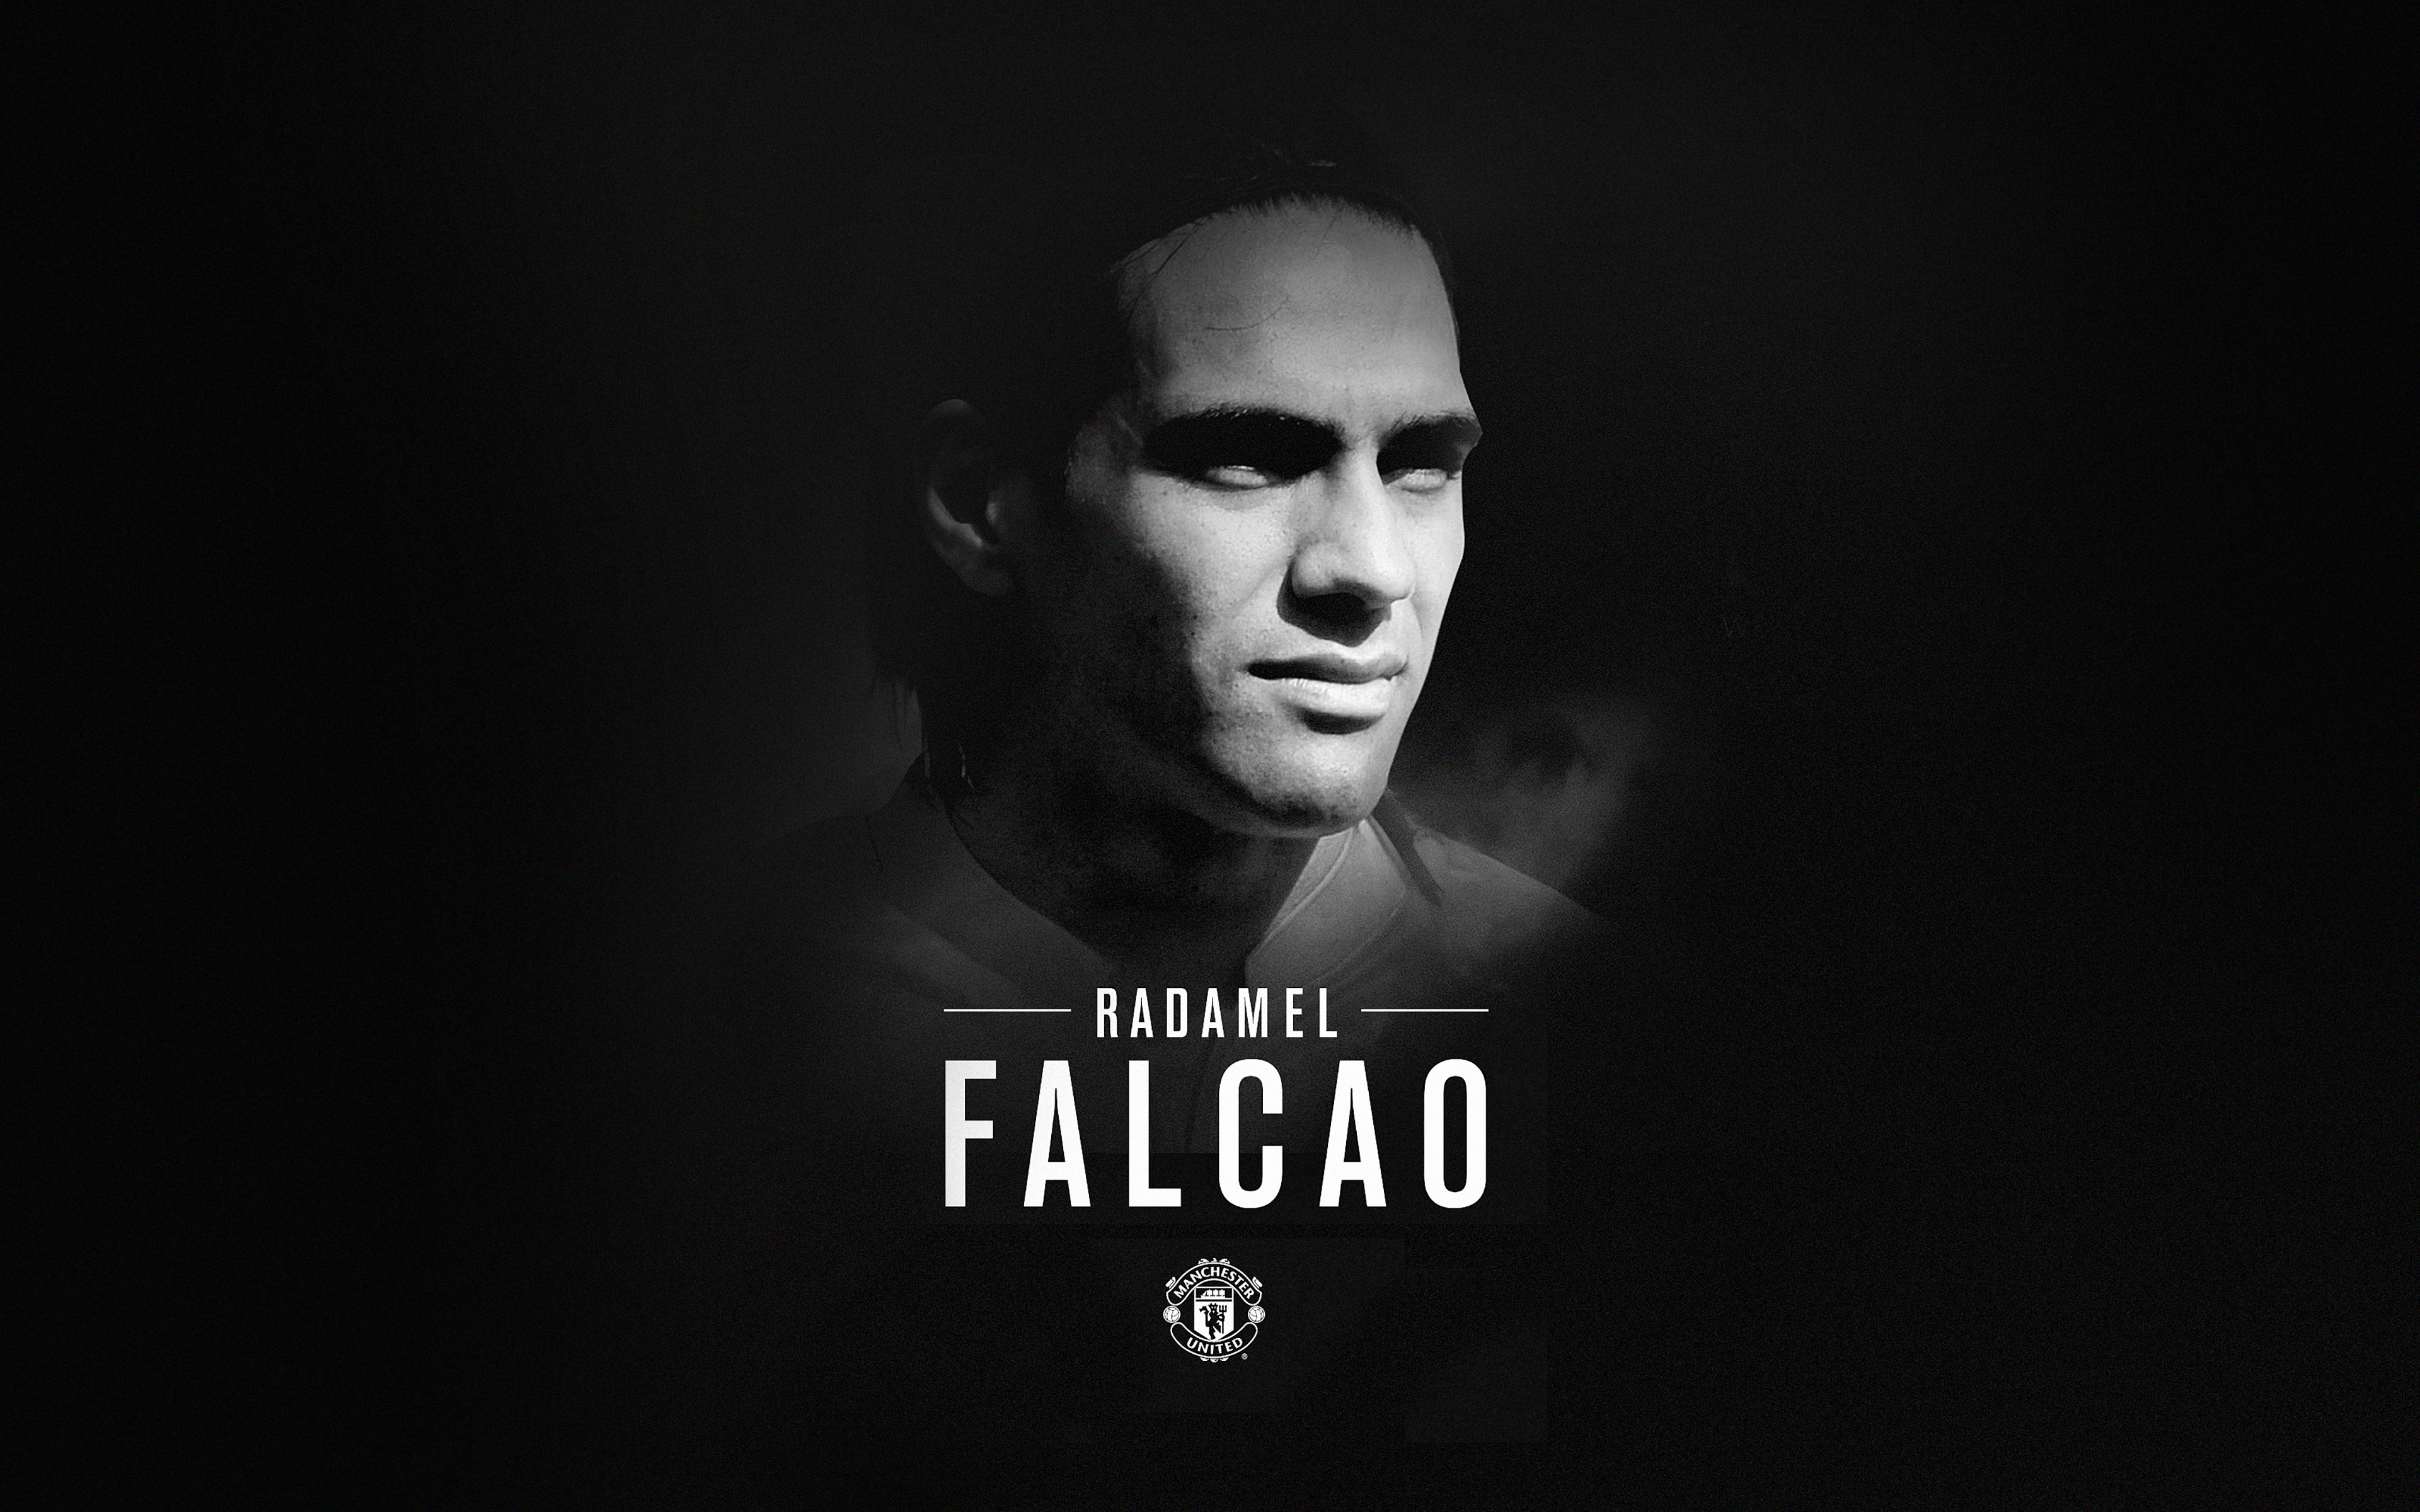 Hc15 Radamel Falcao Bw Manchester United Welcome Papers Co